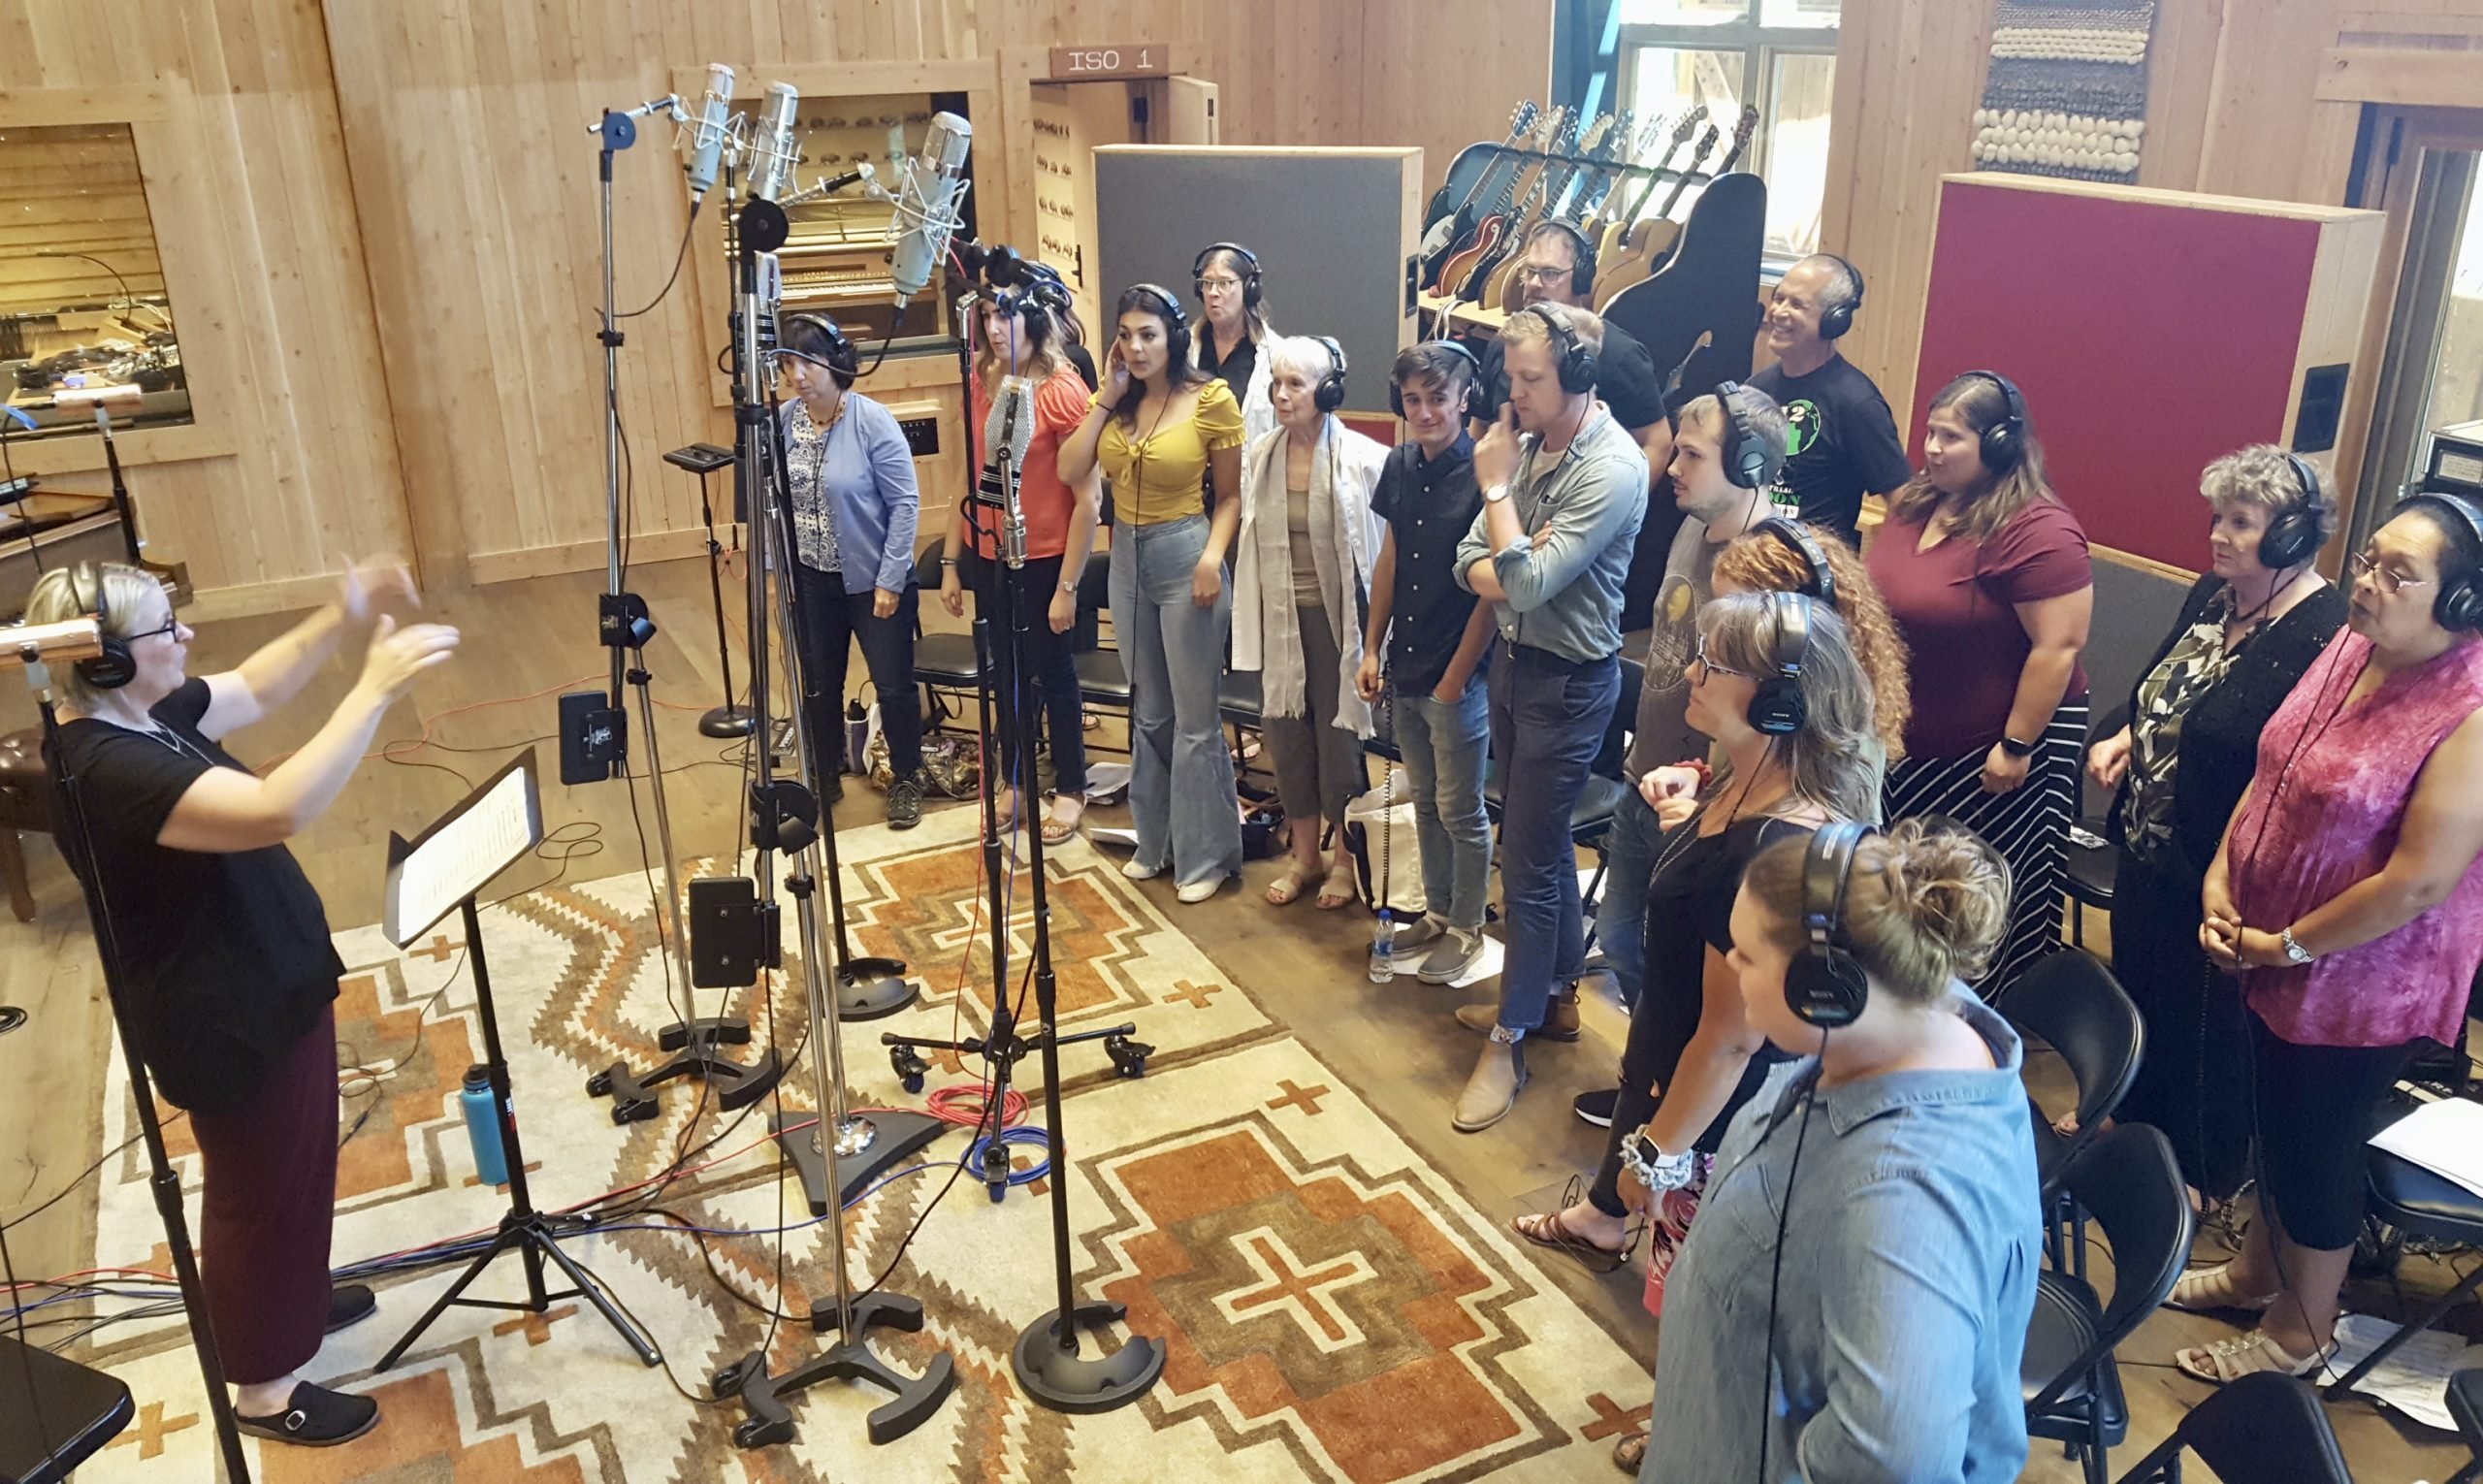 Director Mindy Wall ably leads the choir during the recording session.